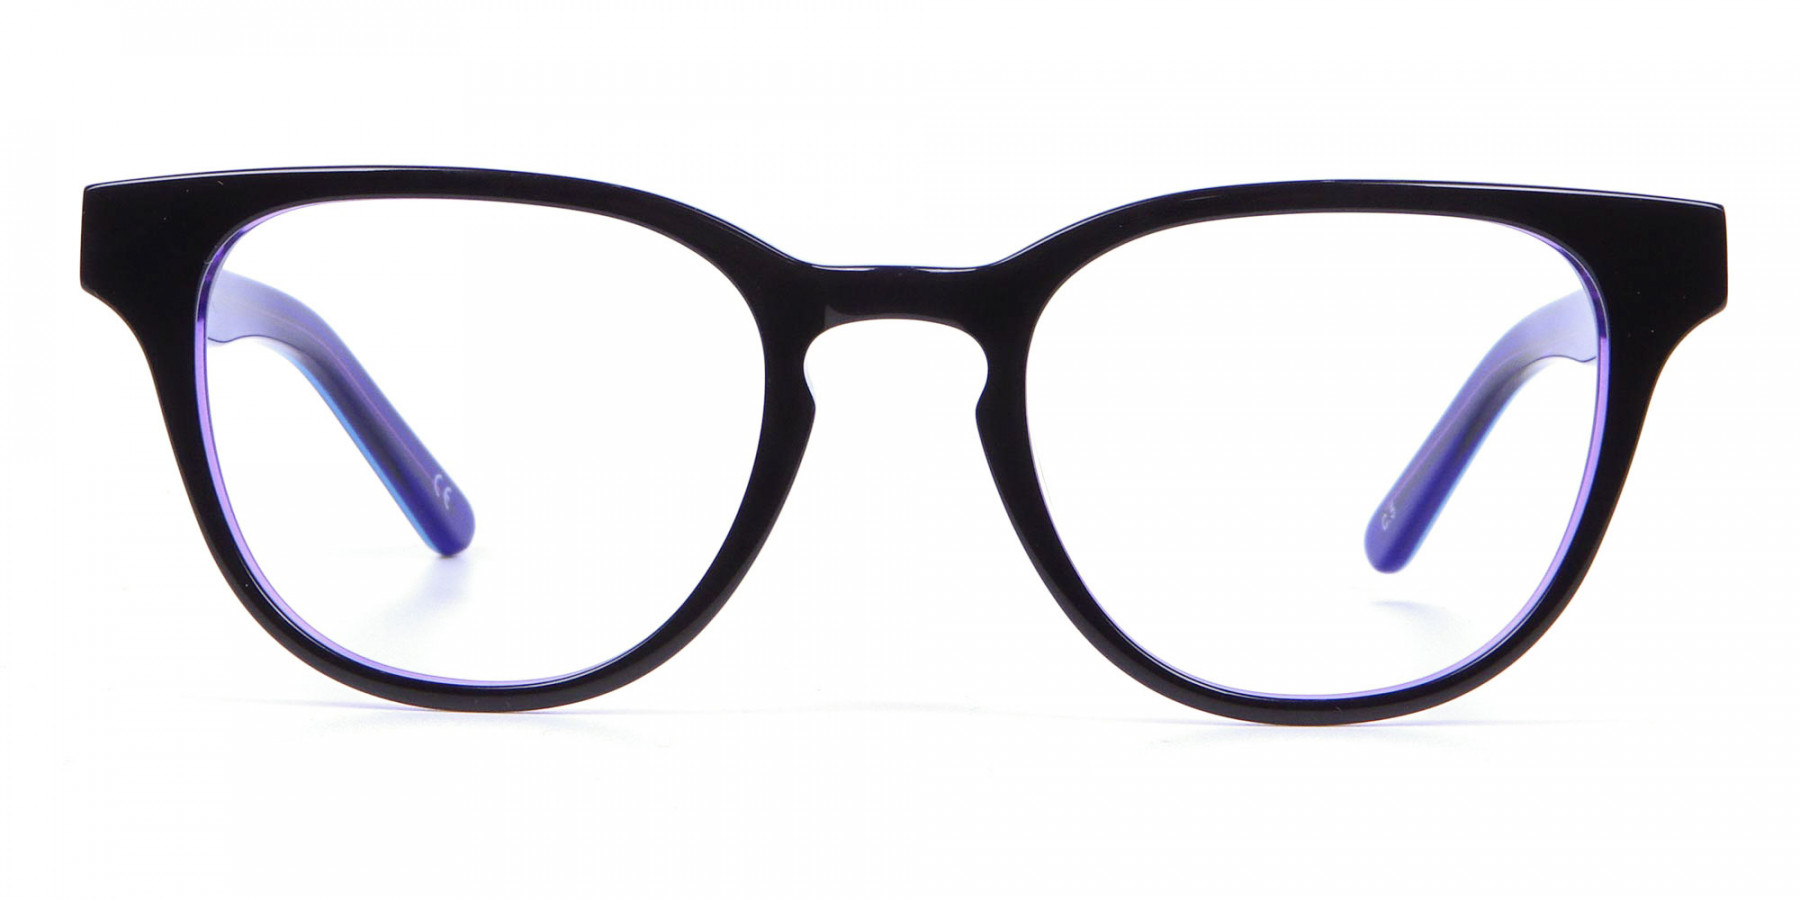 Black and Purple Frame for Small Face